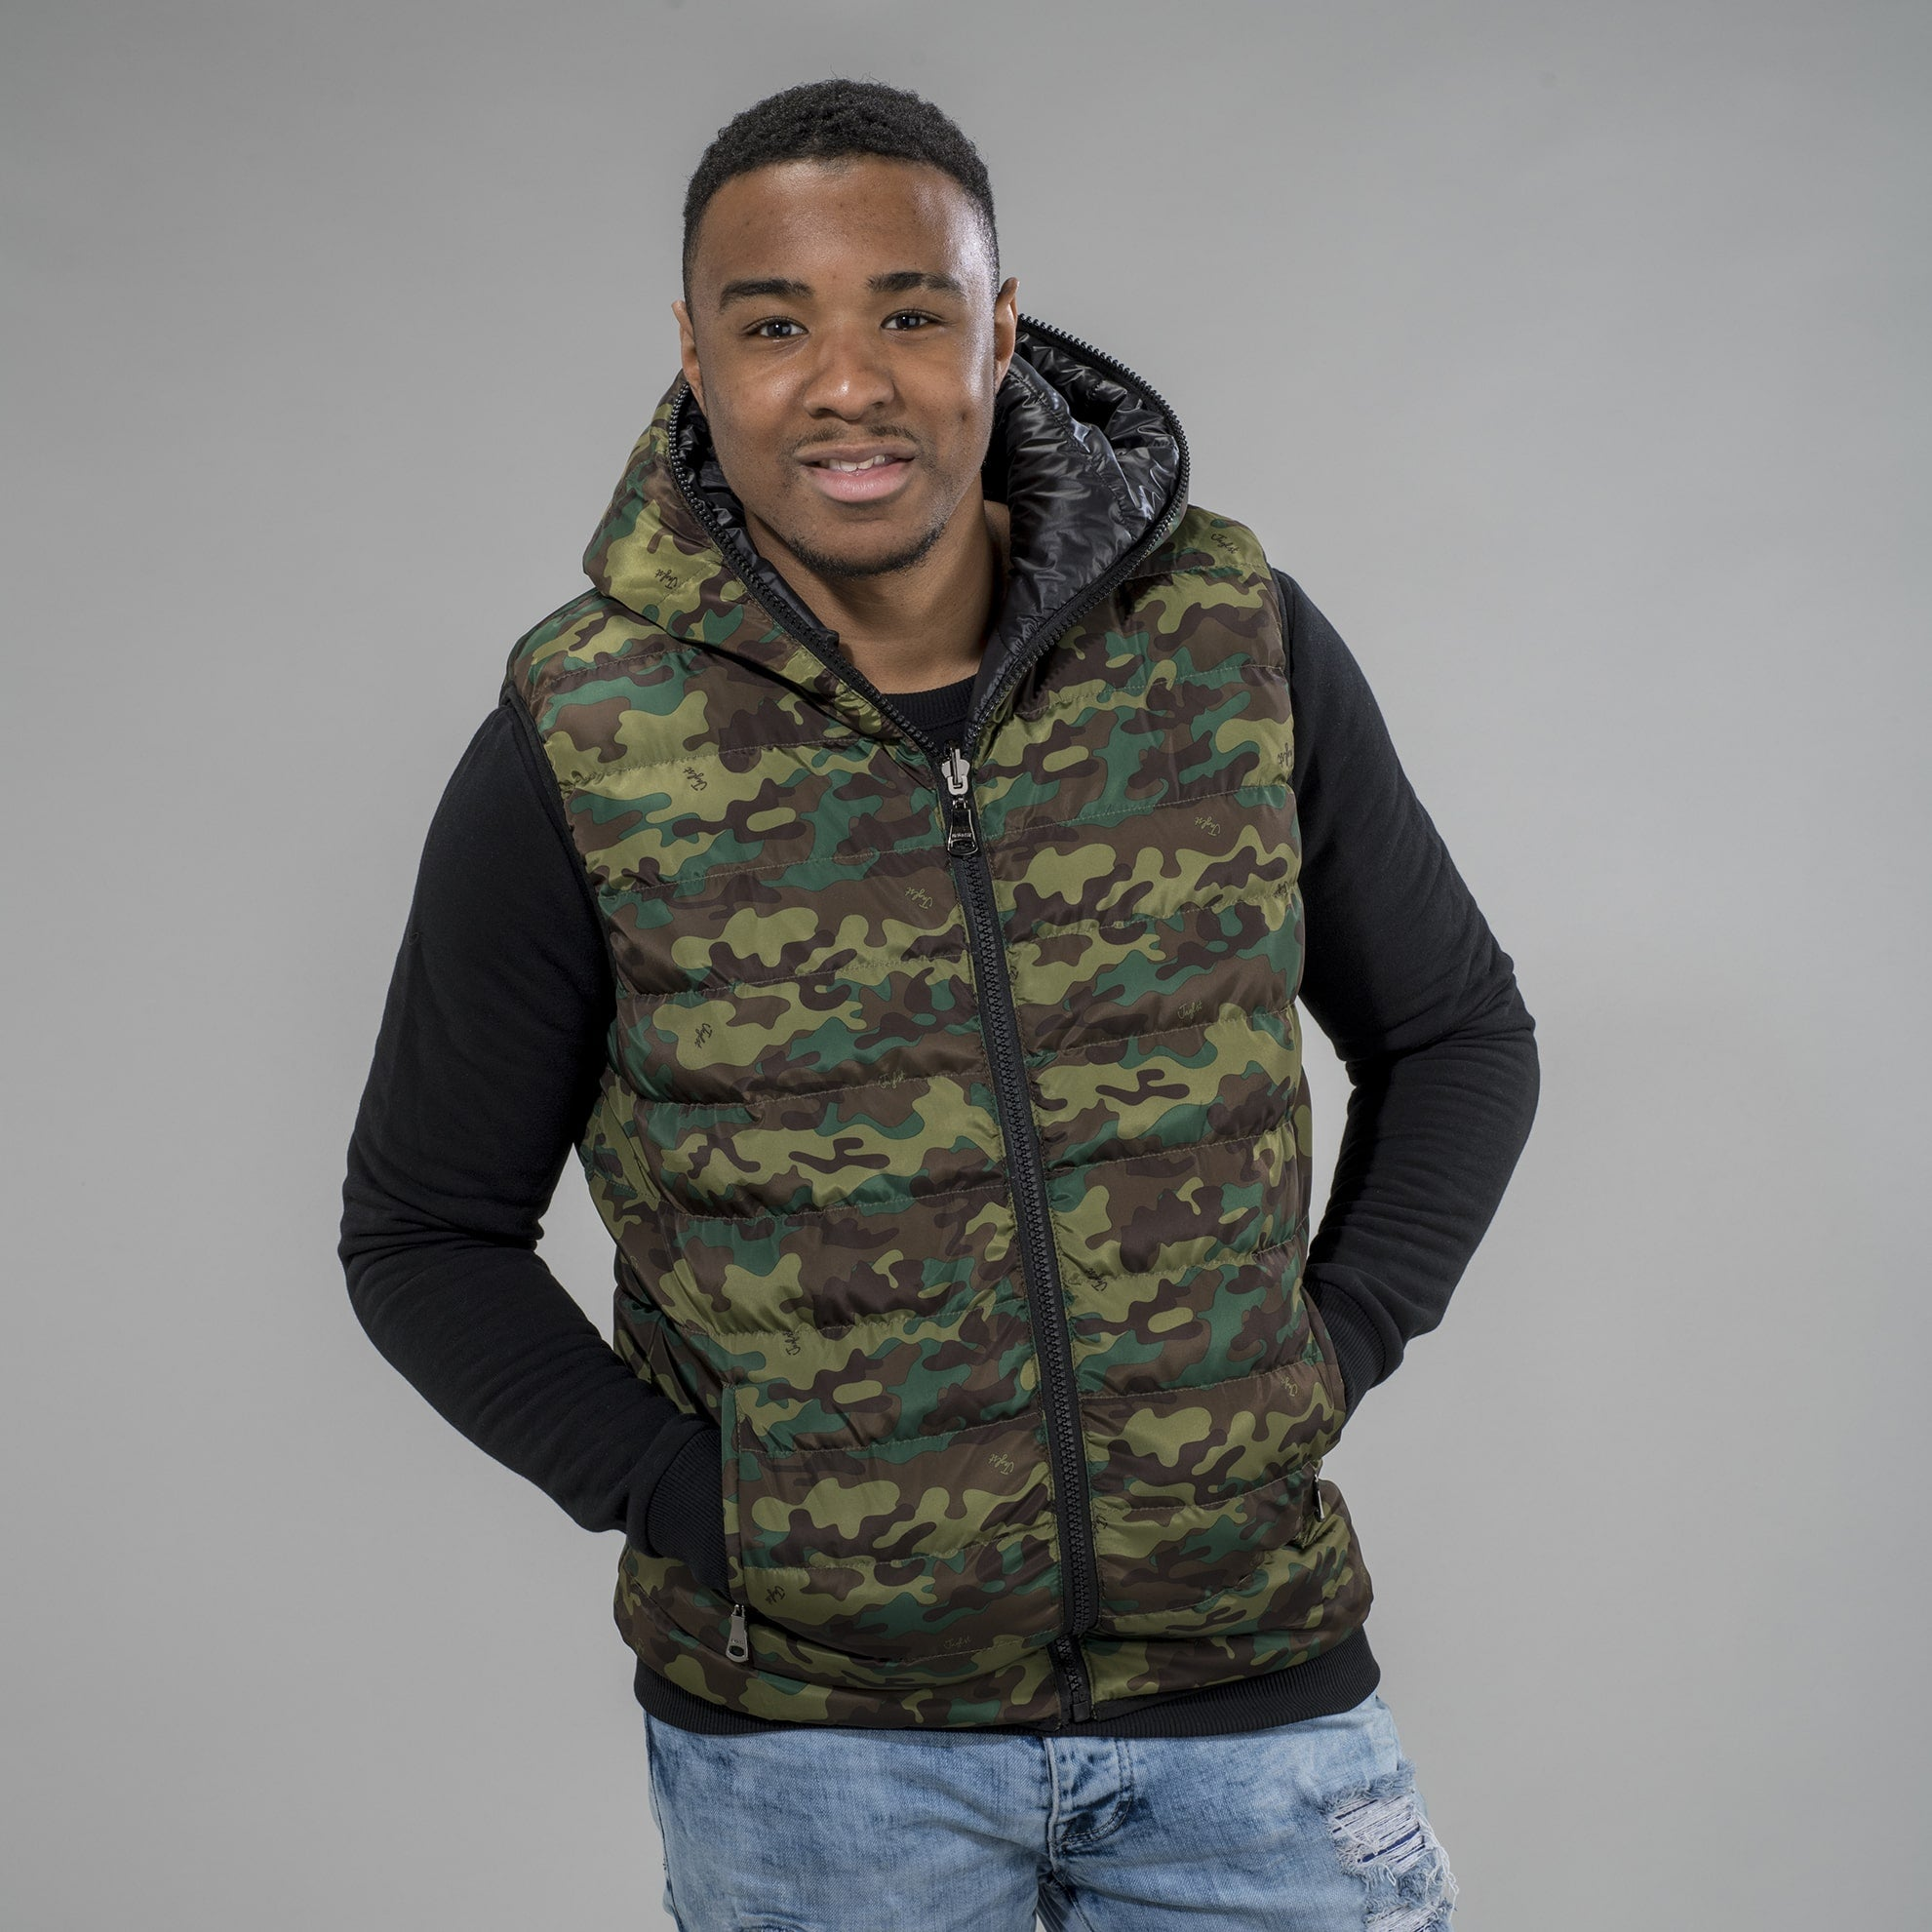 Camo and Black Body Warmer